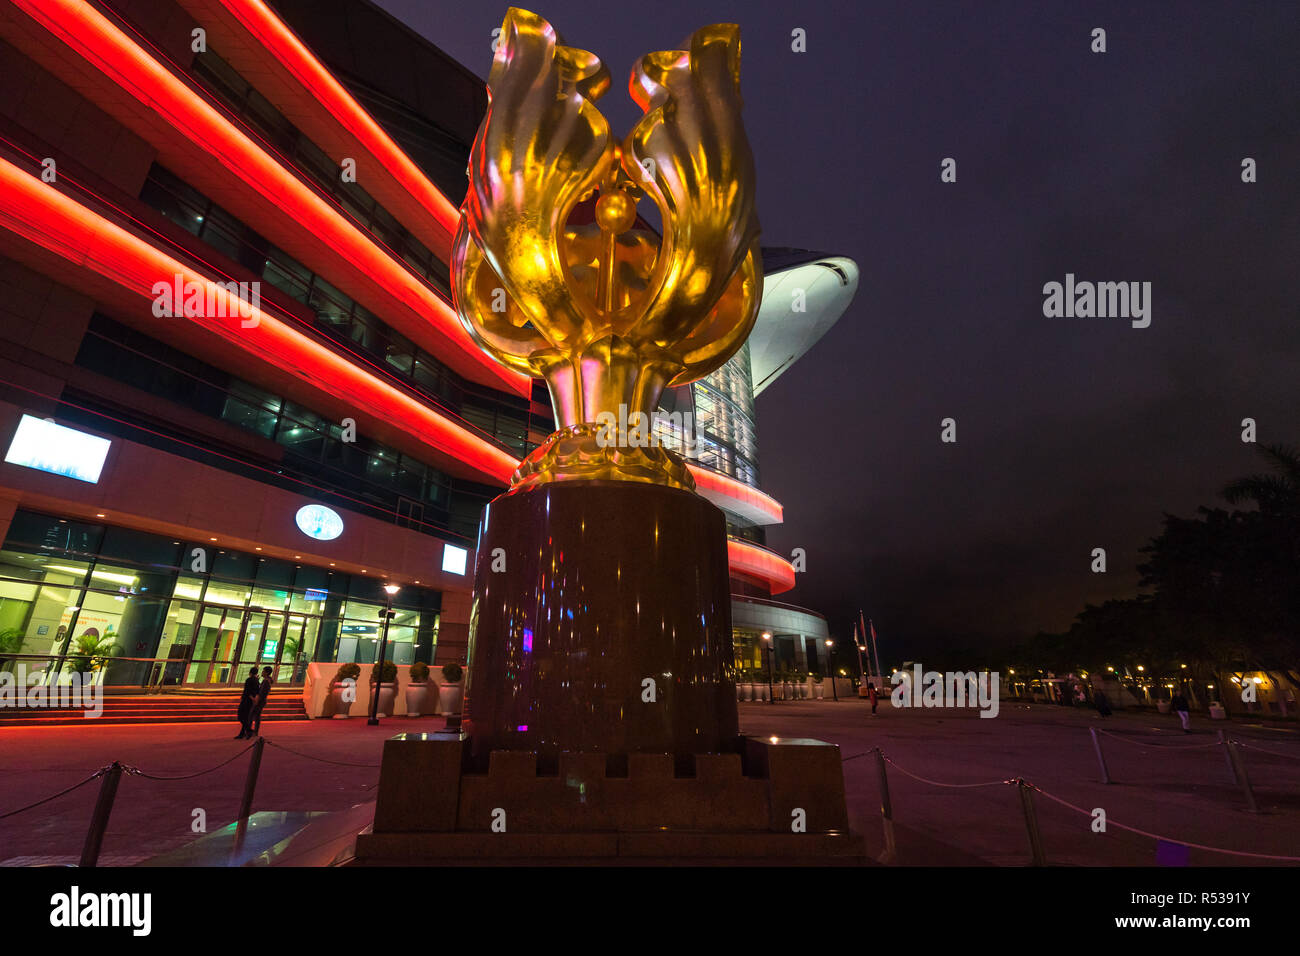 Night view of Golden Bauhinia Square. The statue was built to mark the 1997 handover from Britain to China. Hong Kong, Wan Chai, January 2018 - Stock Image